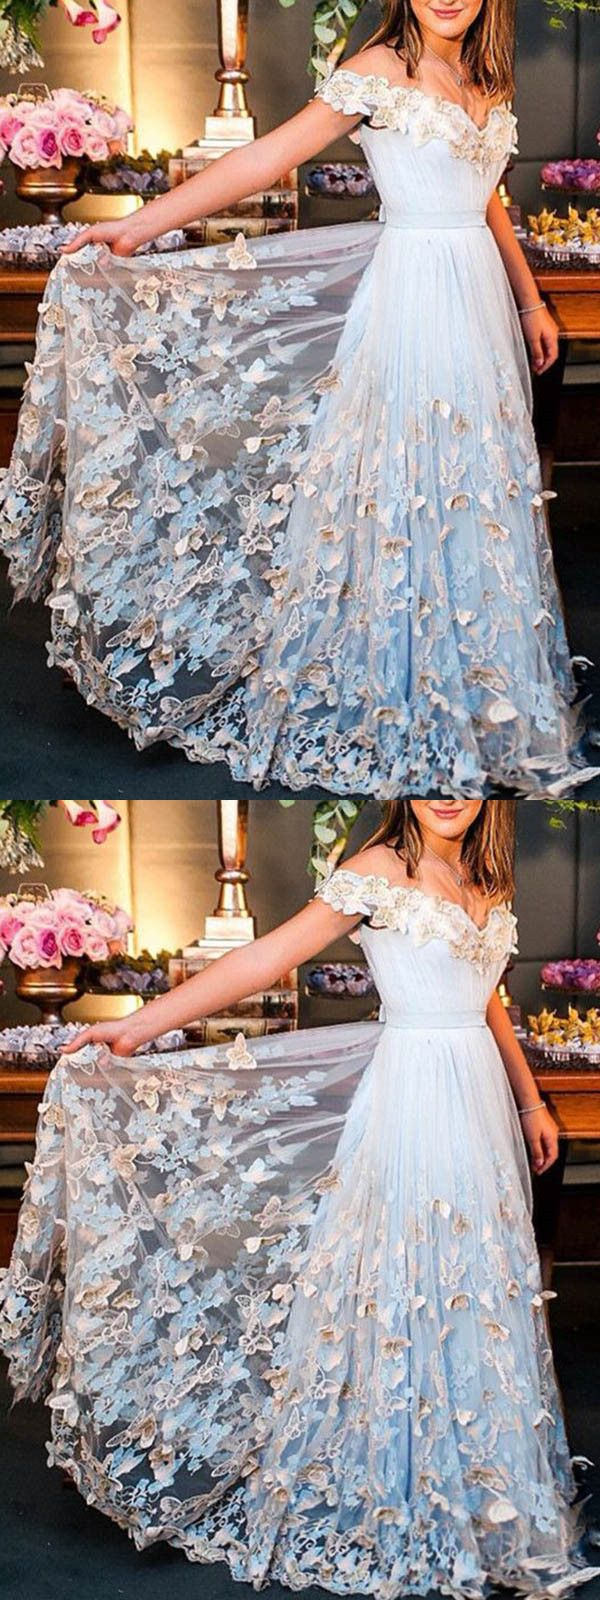 Off the shoulder vintage prom dress blue lace prom dress with sleeve